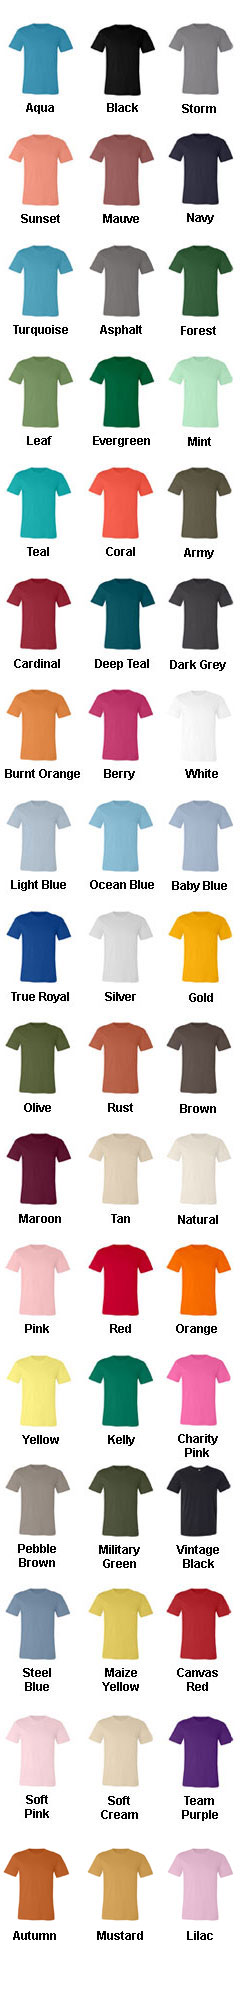 Unisex Jersey Short-Sleeve T-Shirt - All Colors